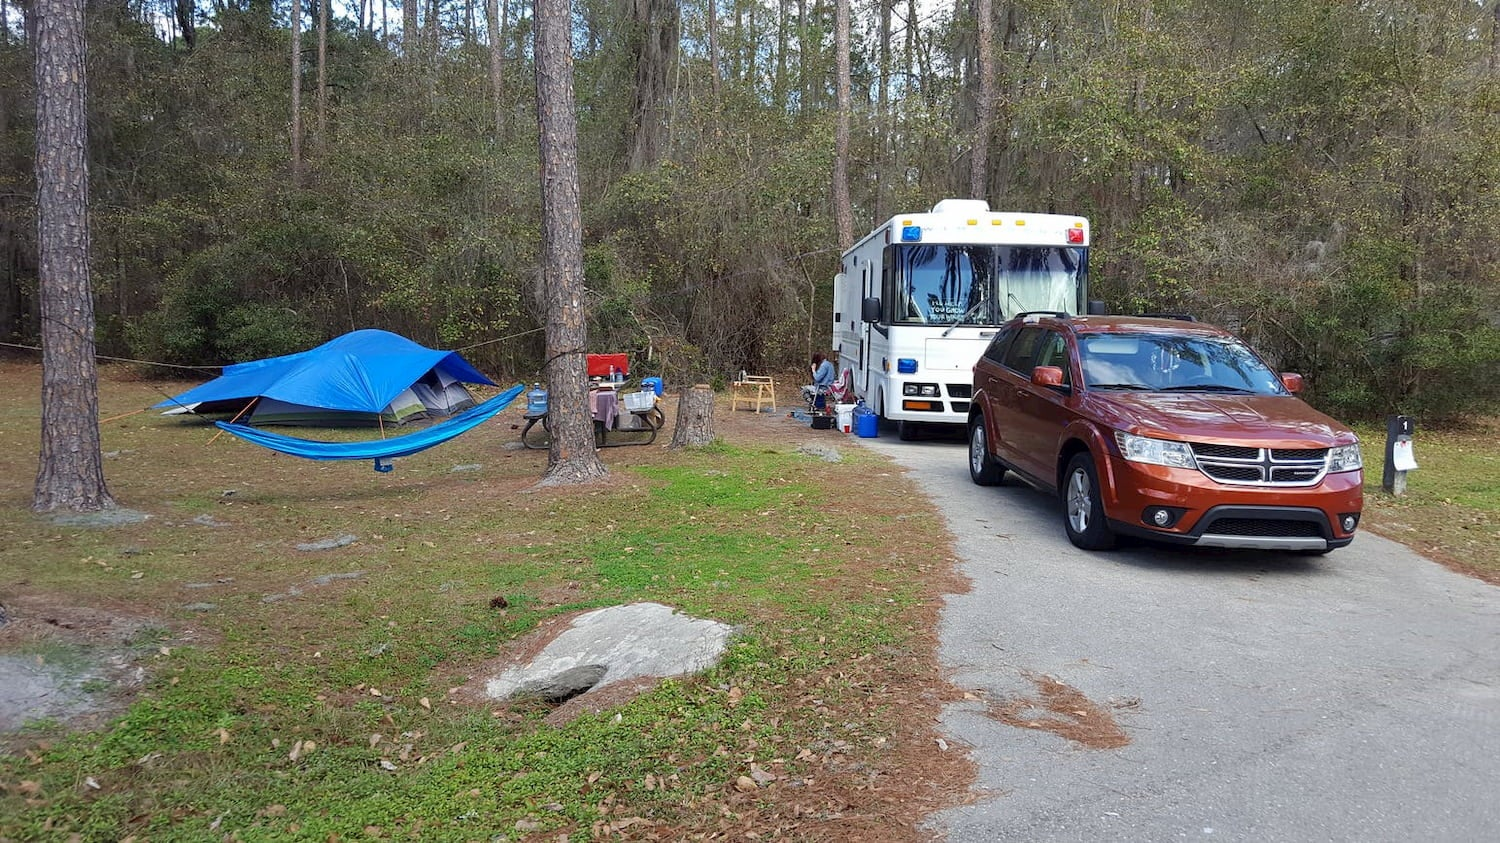 fully set-up campsite with Rv and car